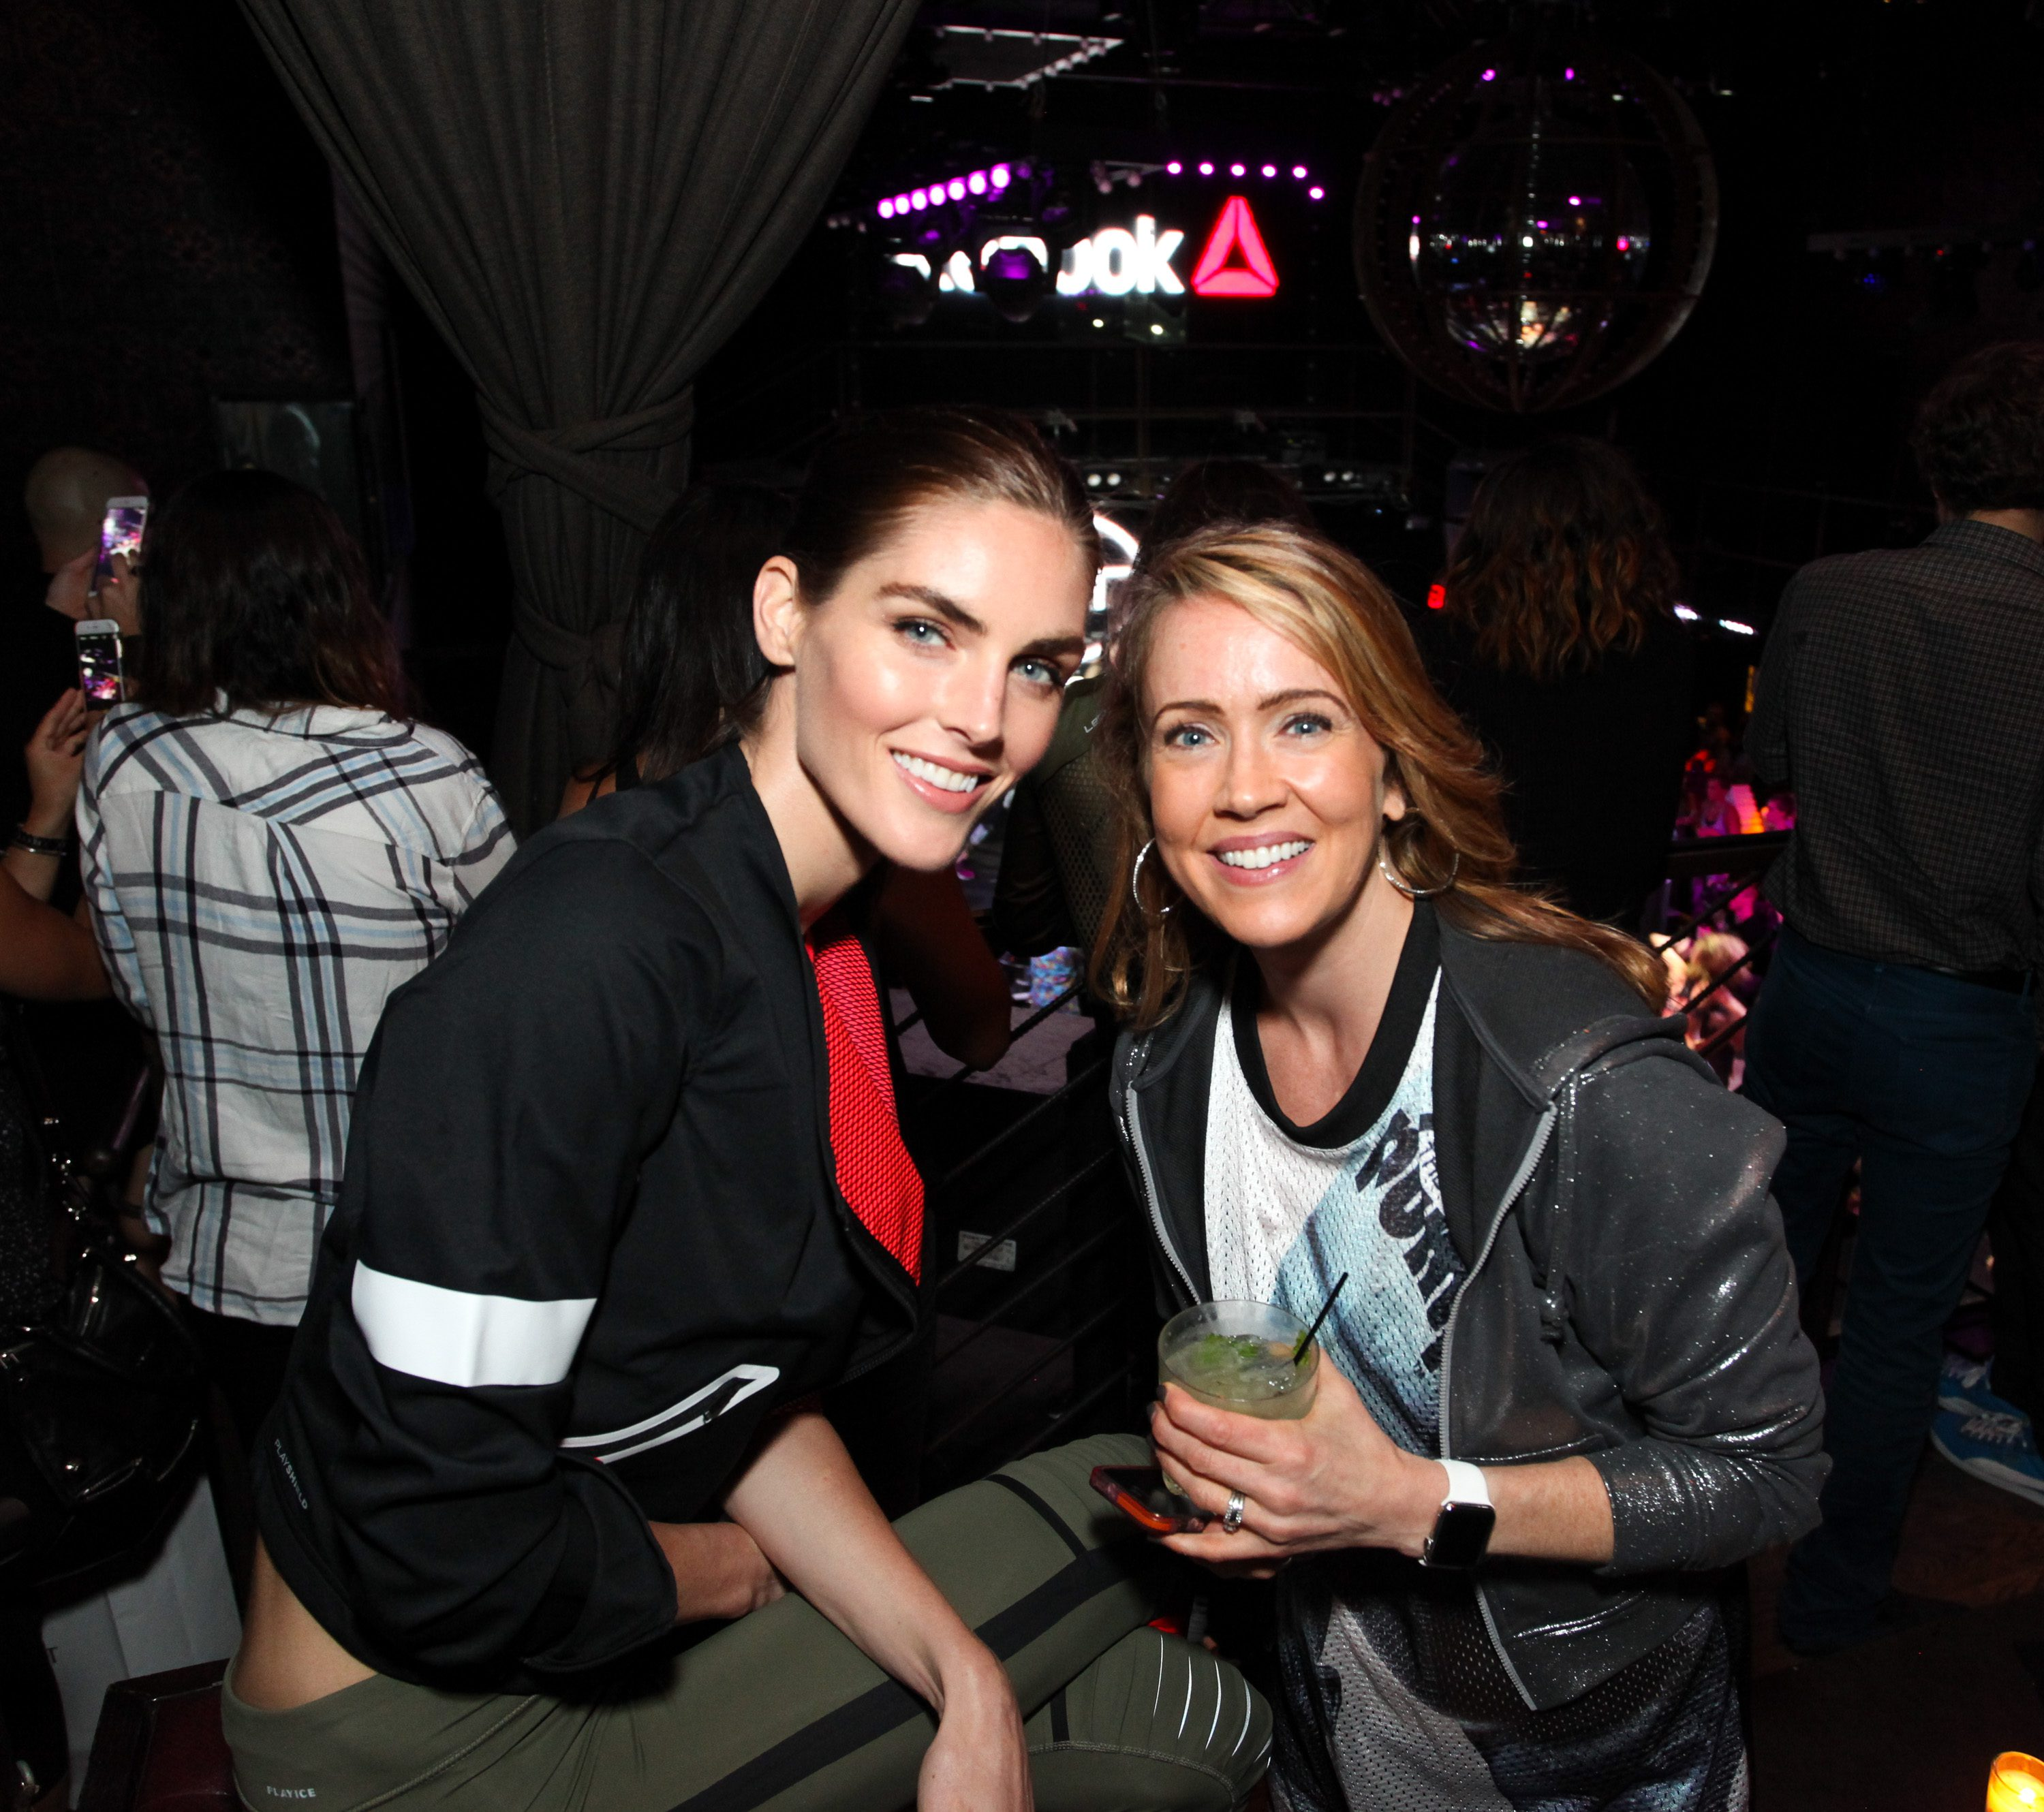 NEW YORK, NY - SEPTEMBER 16: (L-R)Hilary Rhoda and Catherine Marshall attend The Reebok #girlswithgrit Showcase at Marquee on September 16, 2015 in New York City. (Photo by Donald Bowers/Getty Images for Reebok)